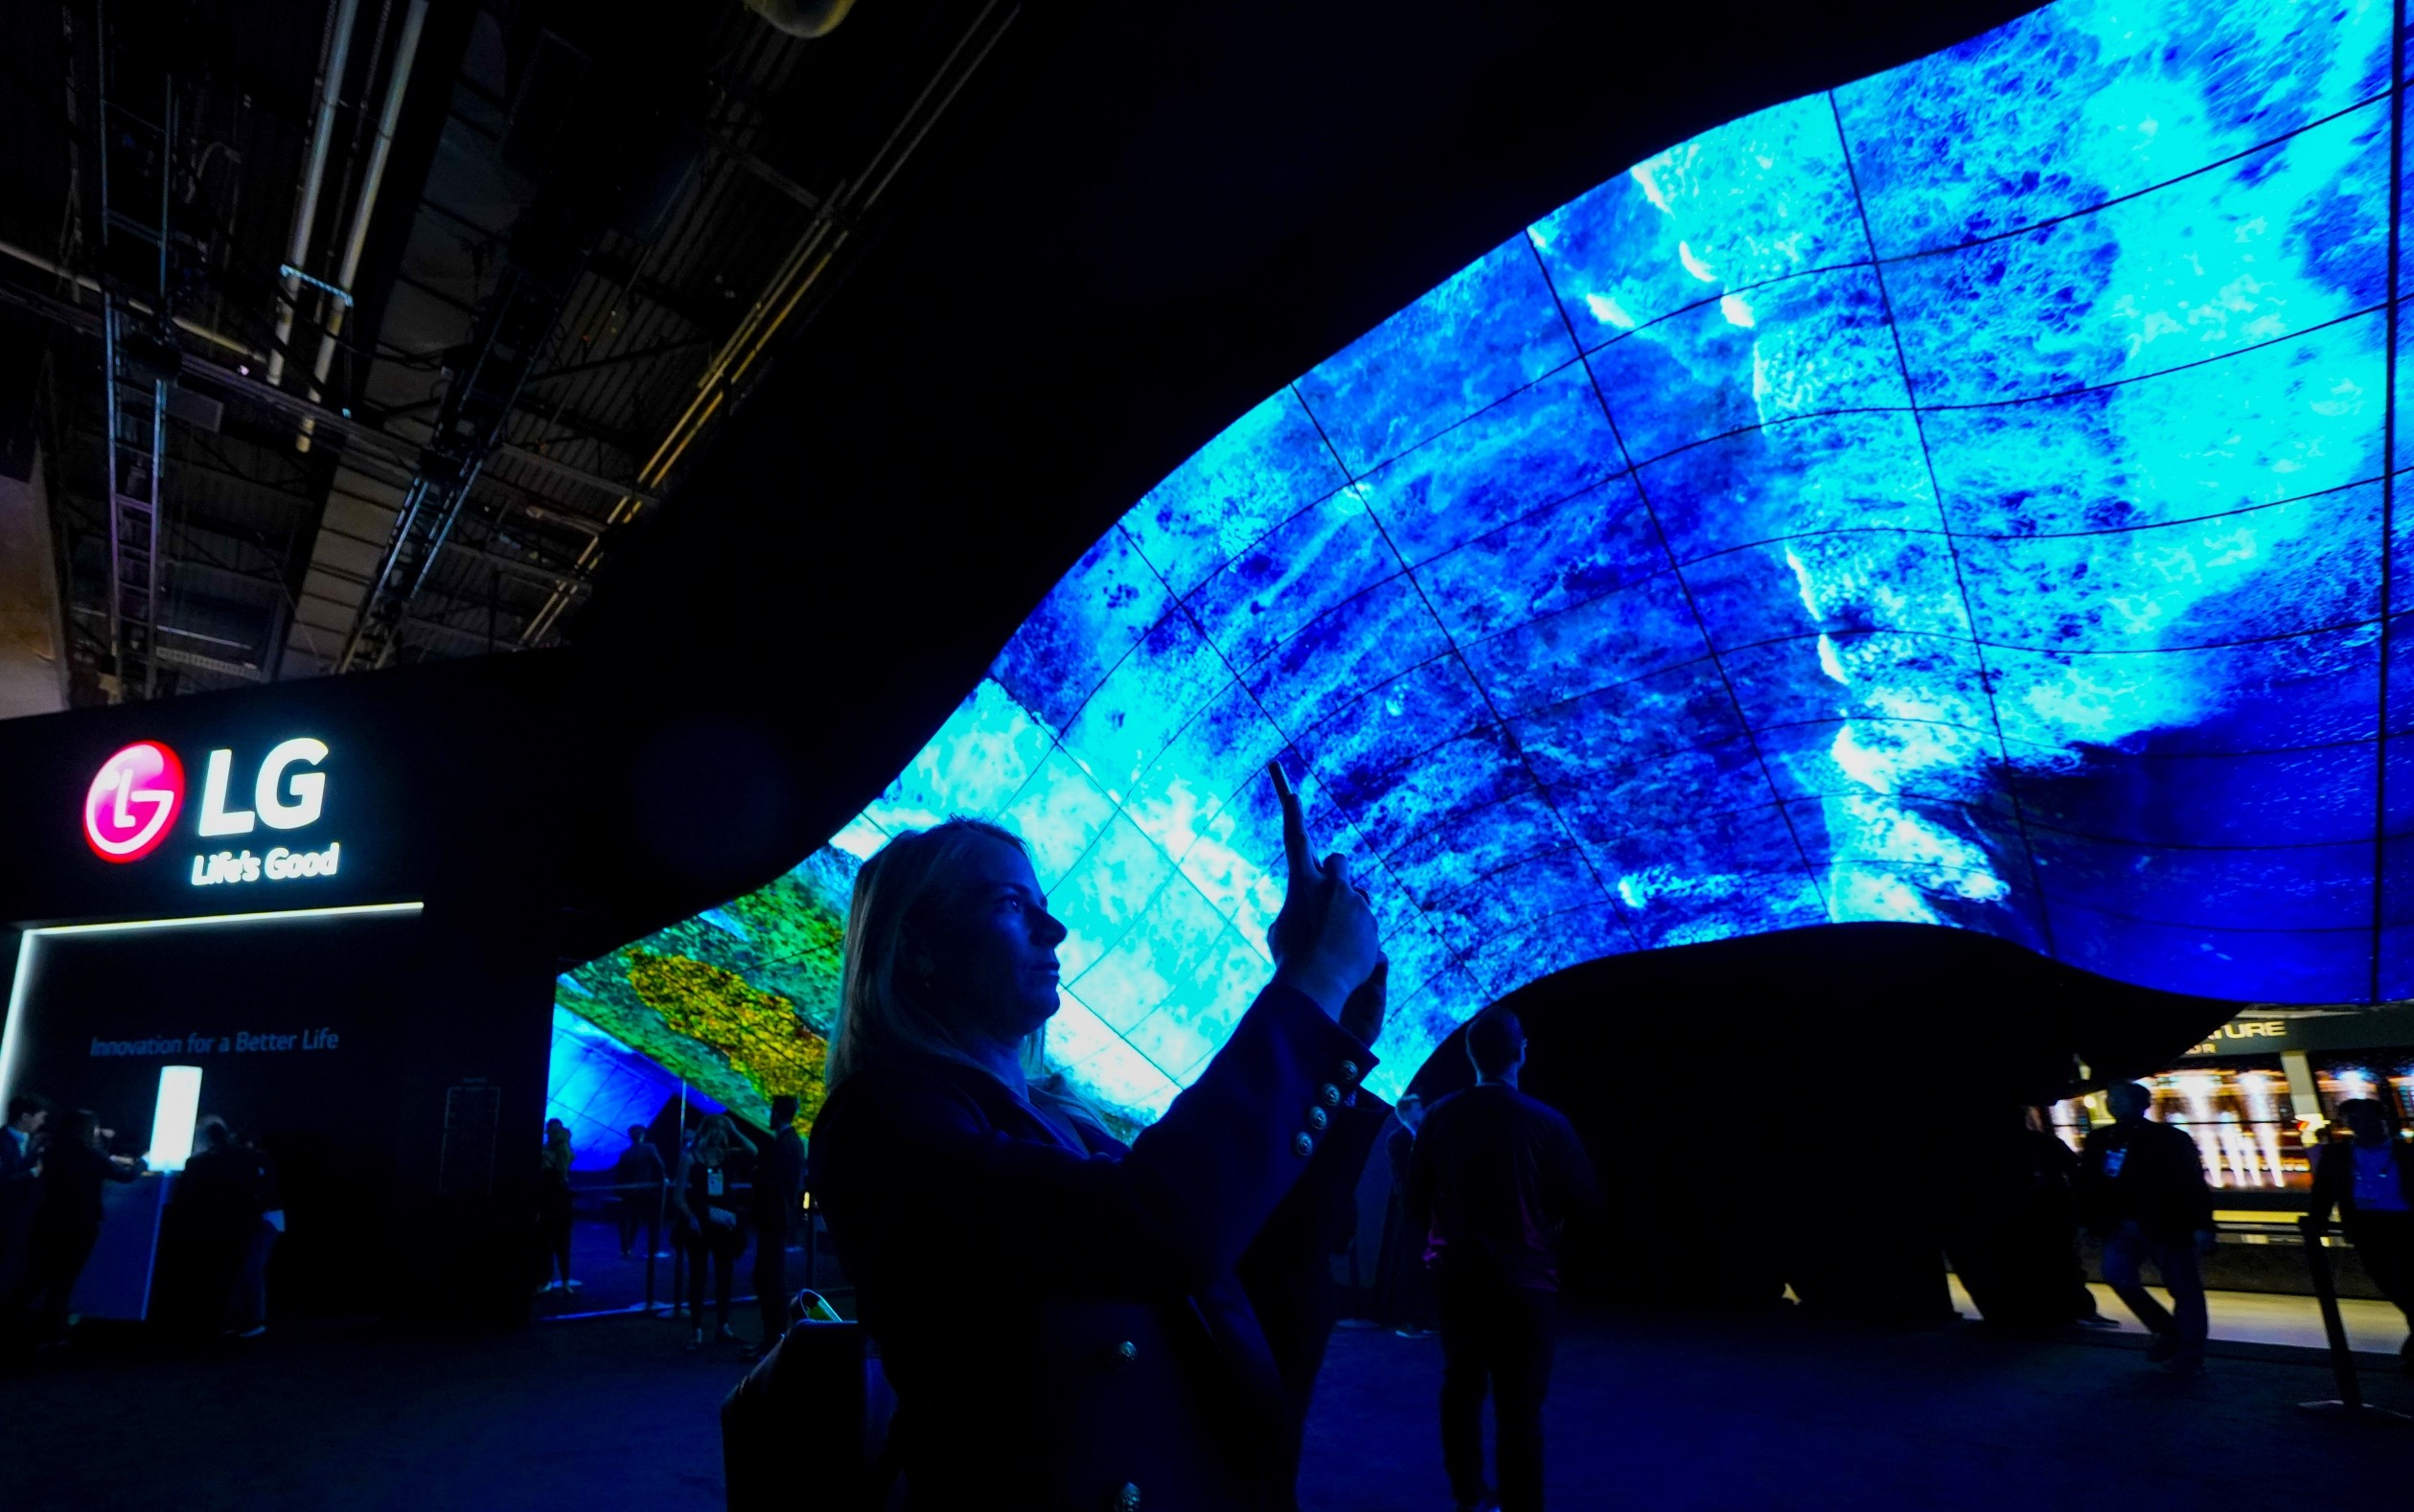 A woman taking a photo of the mesmerizing LG OLED Wave at CES 2020 as it displays vivid blue waves crashing against the coastline